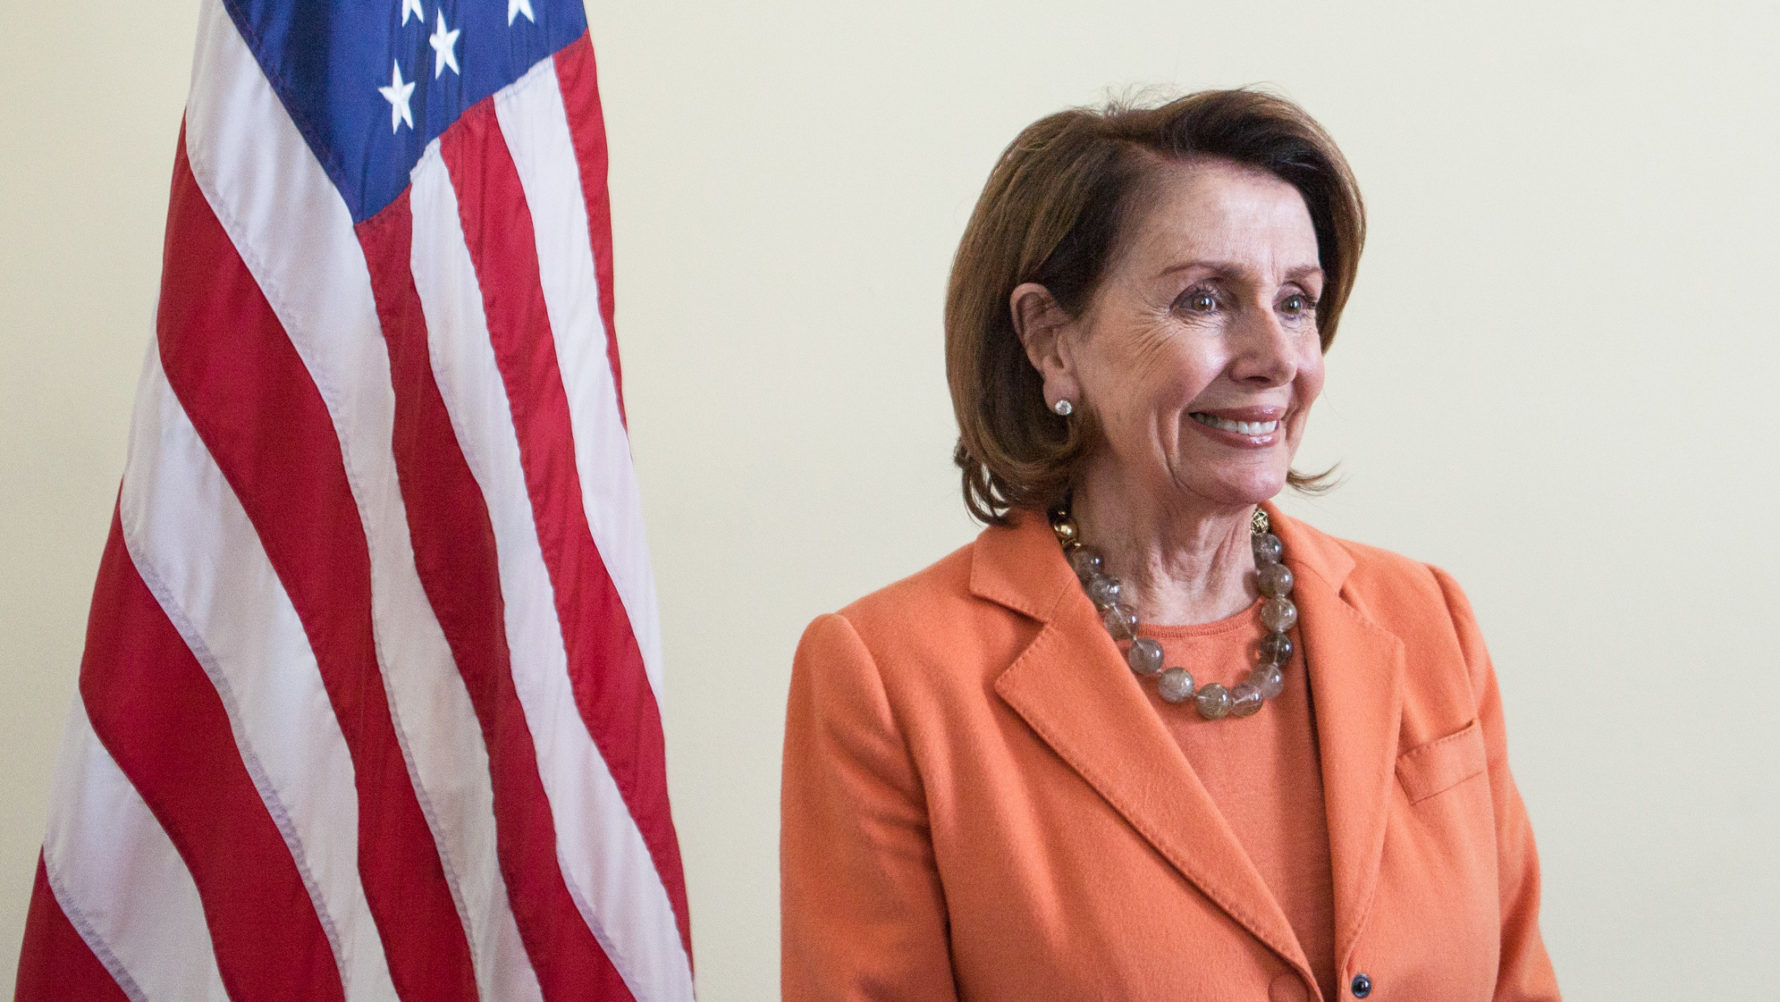 pelosi says democrats have a responsibility to look for common